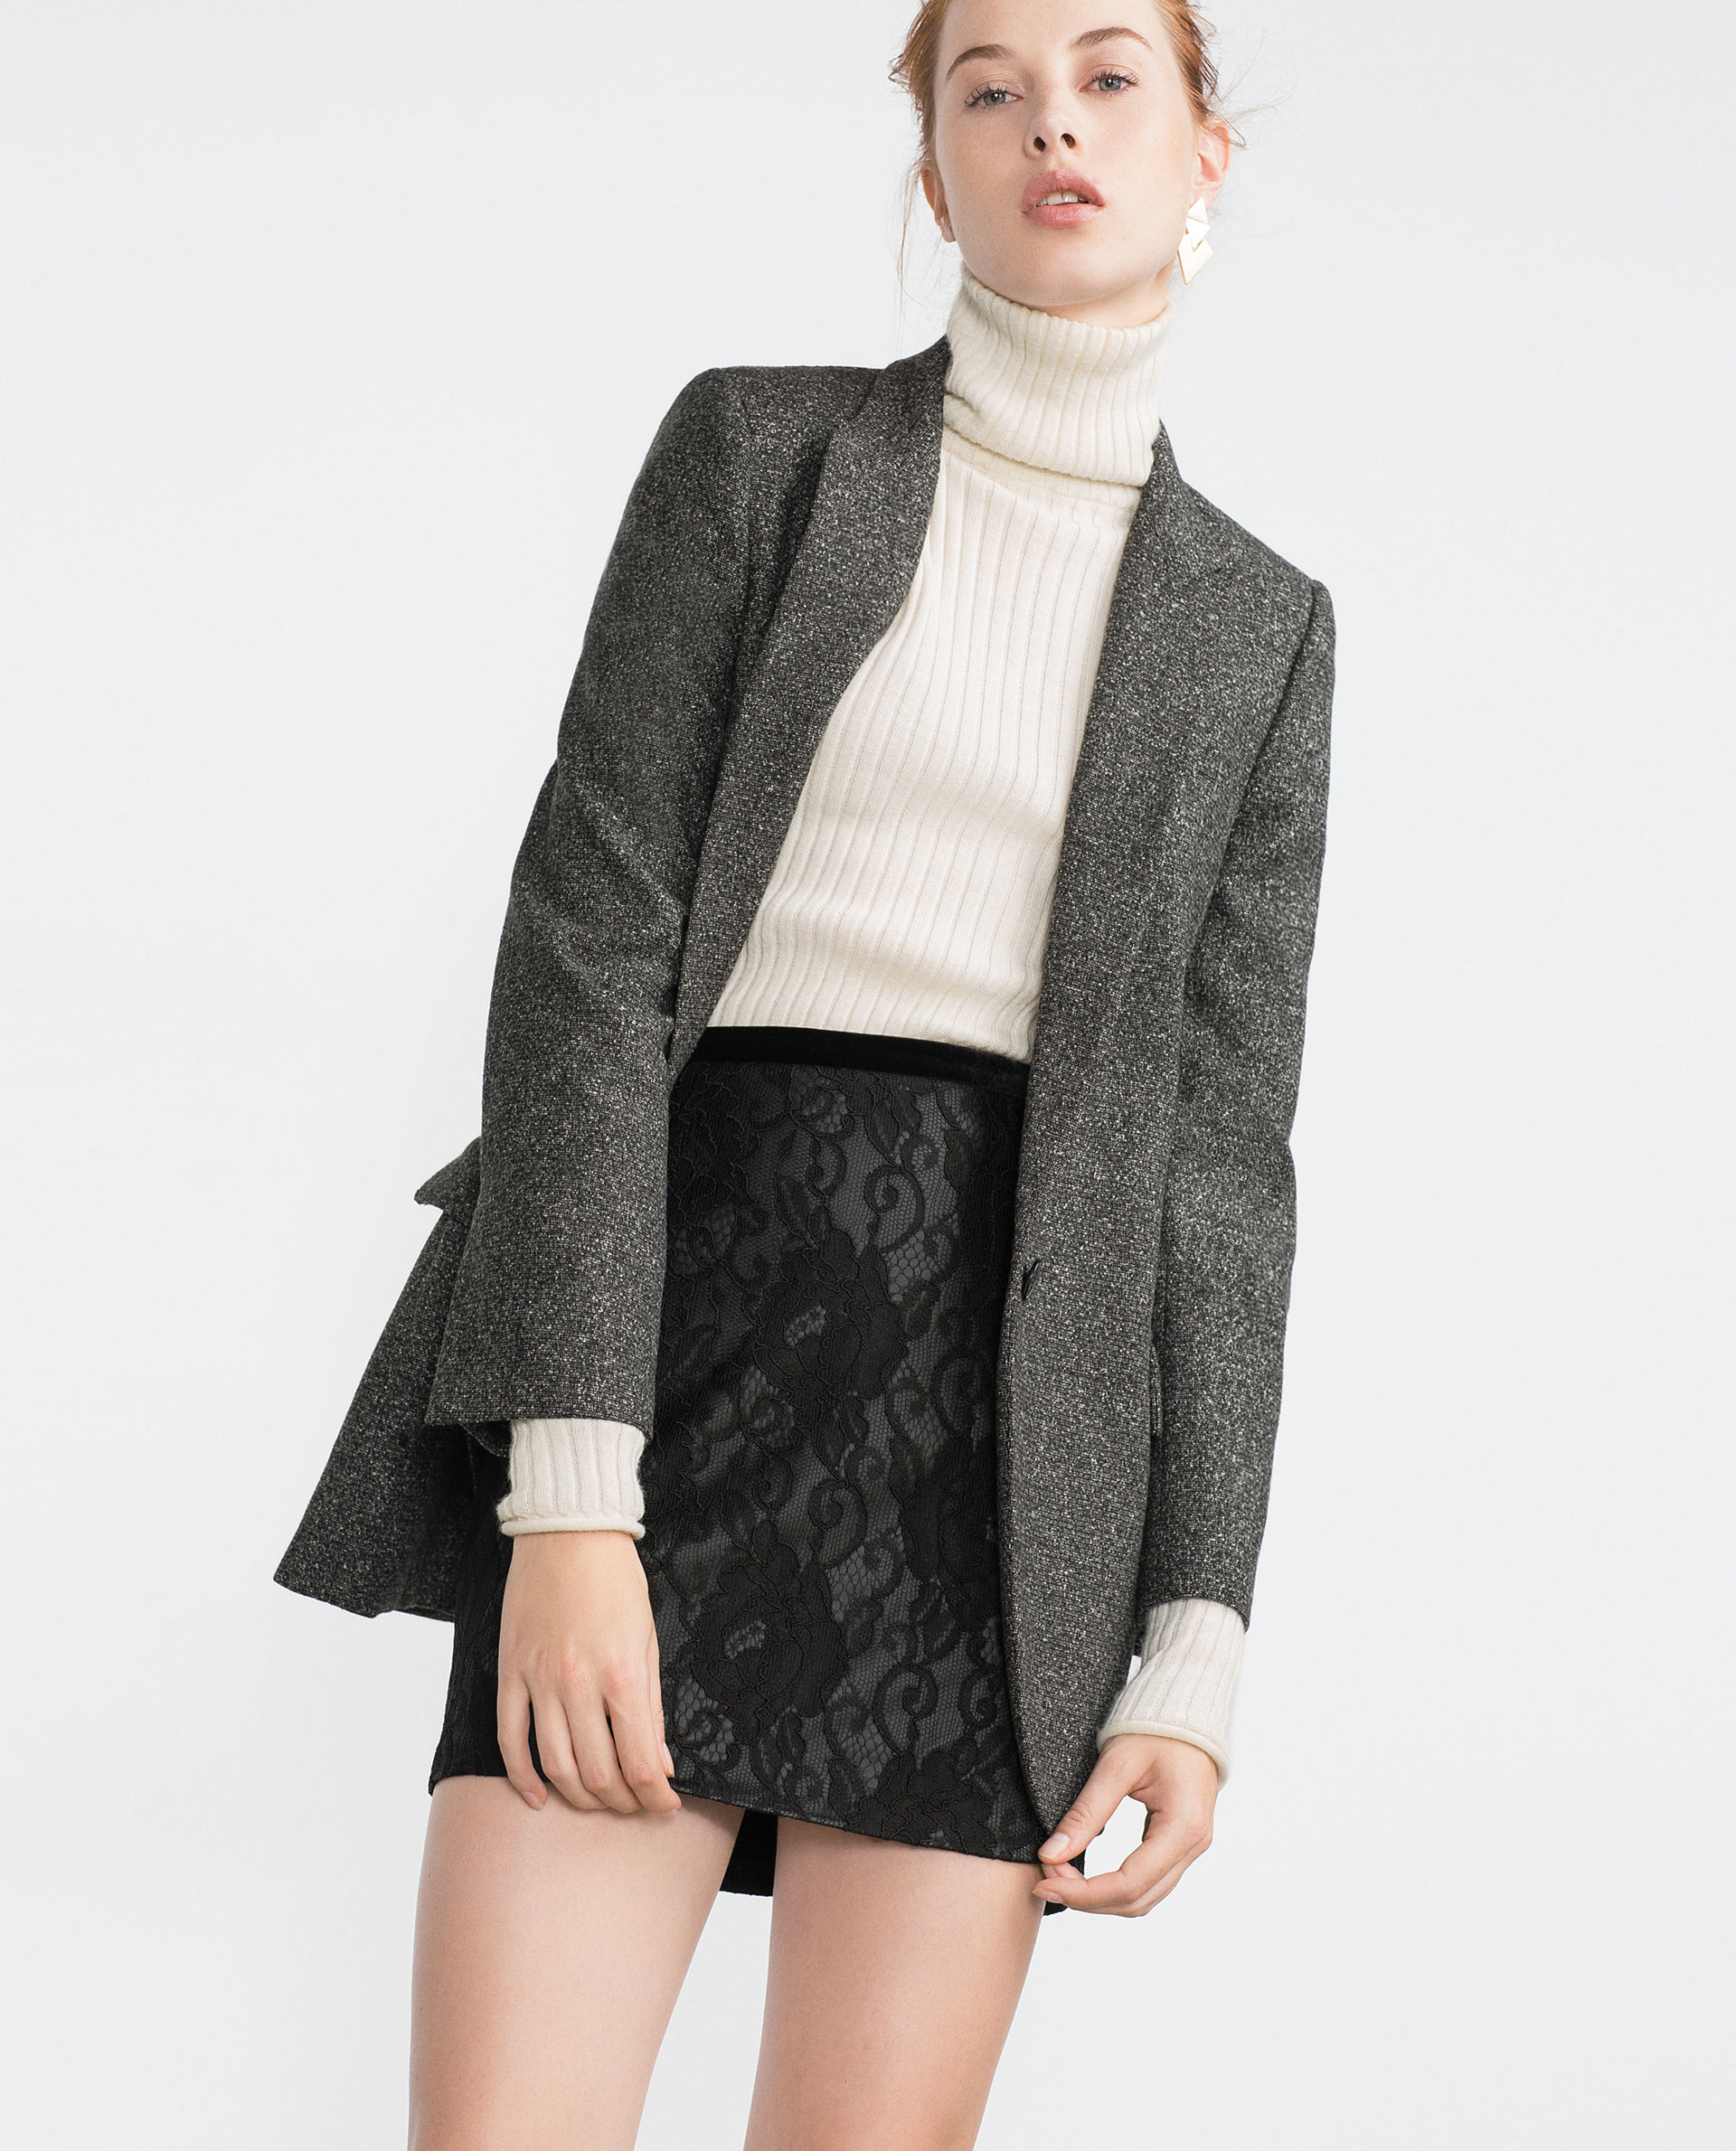 Zara Faux Leather And Lace Skirt in Black | Lyst